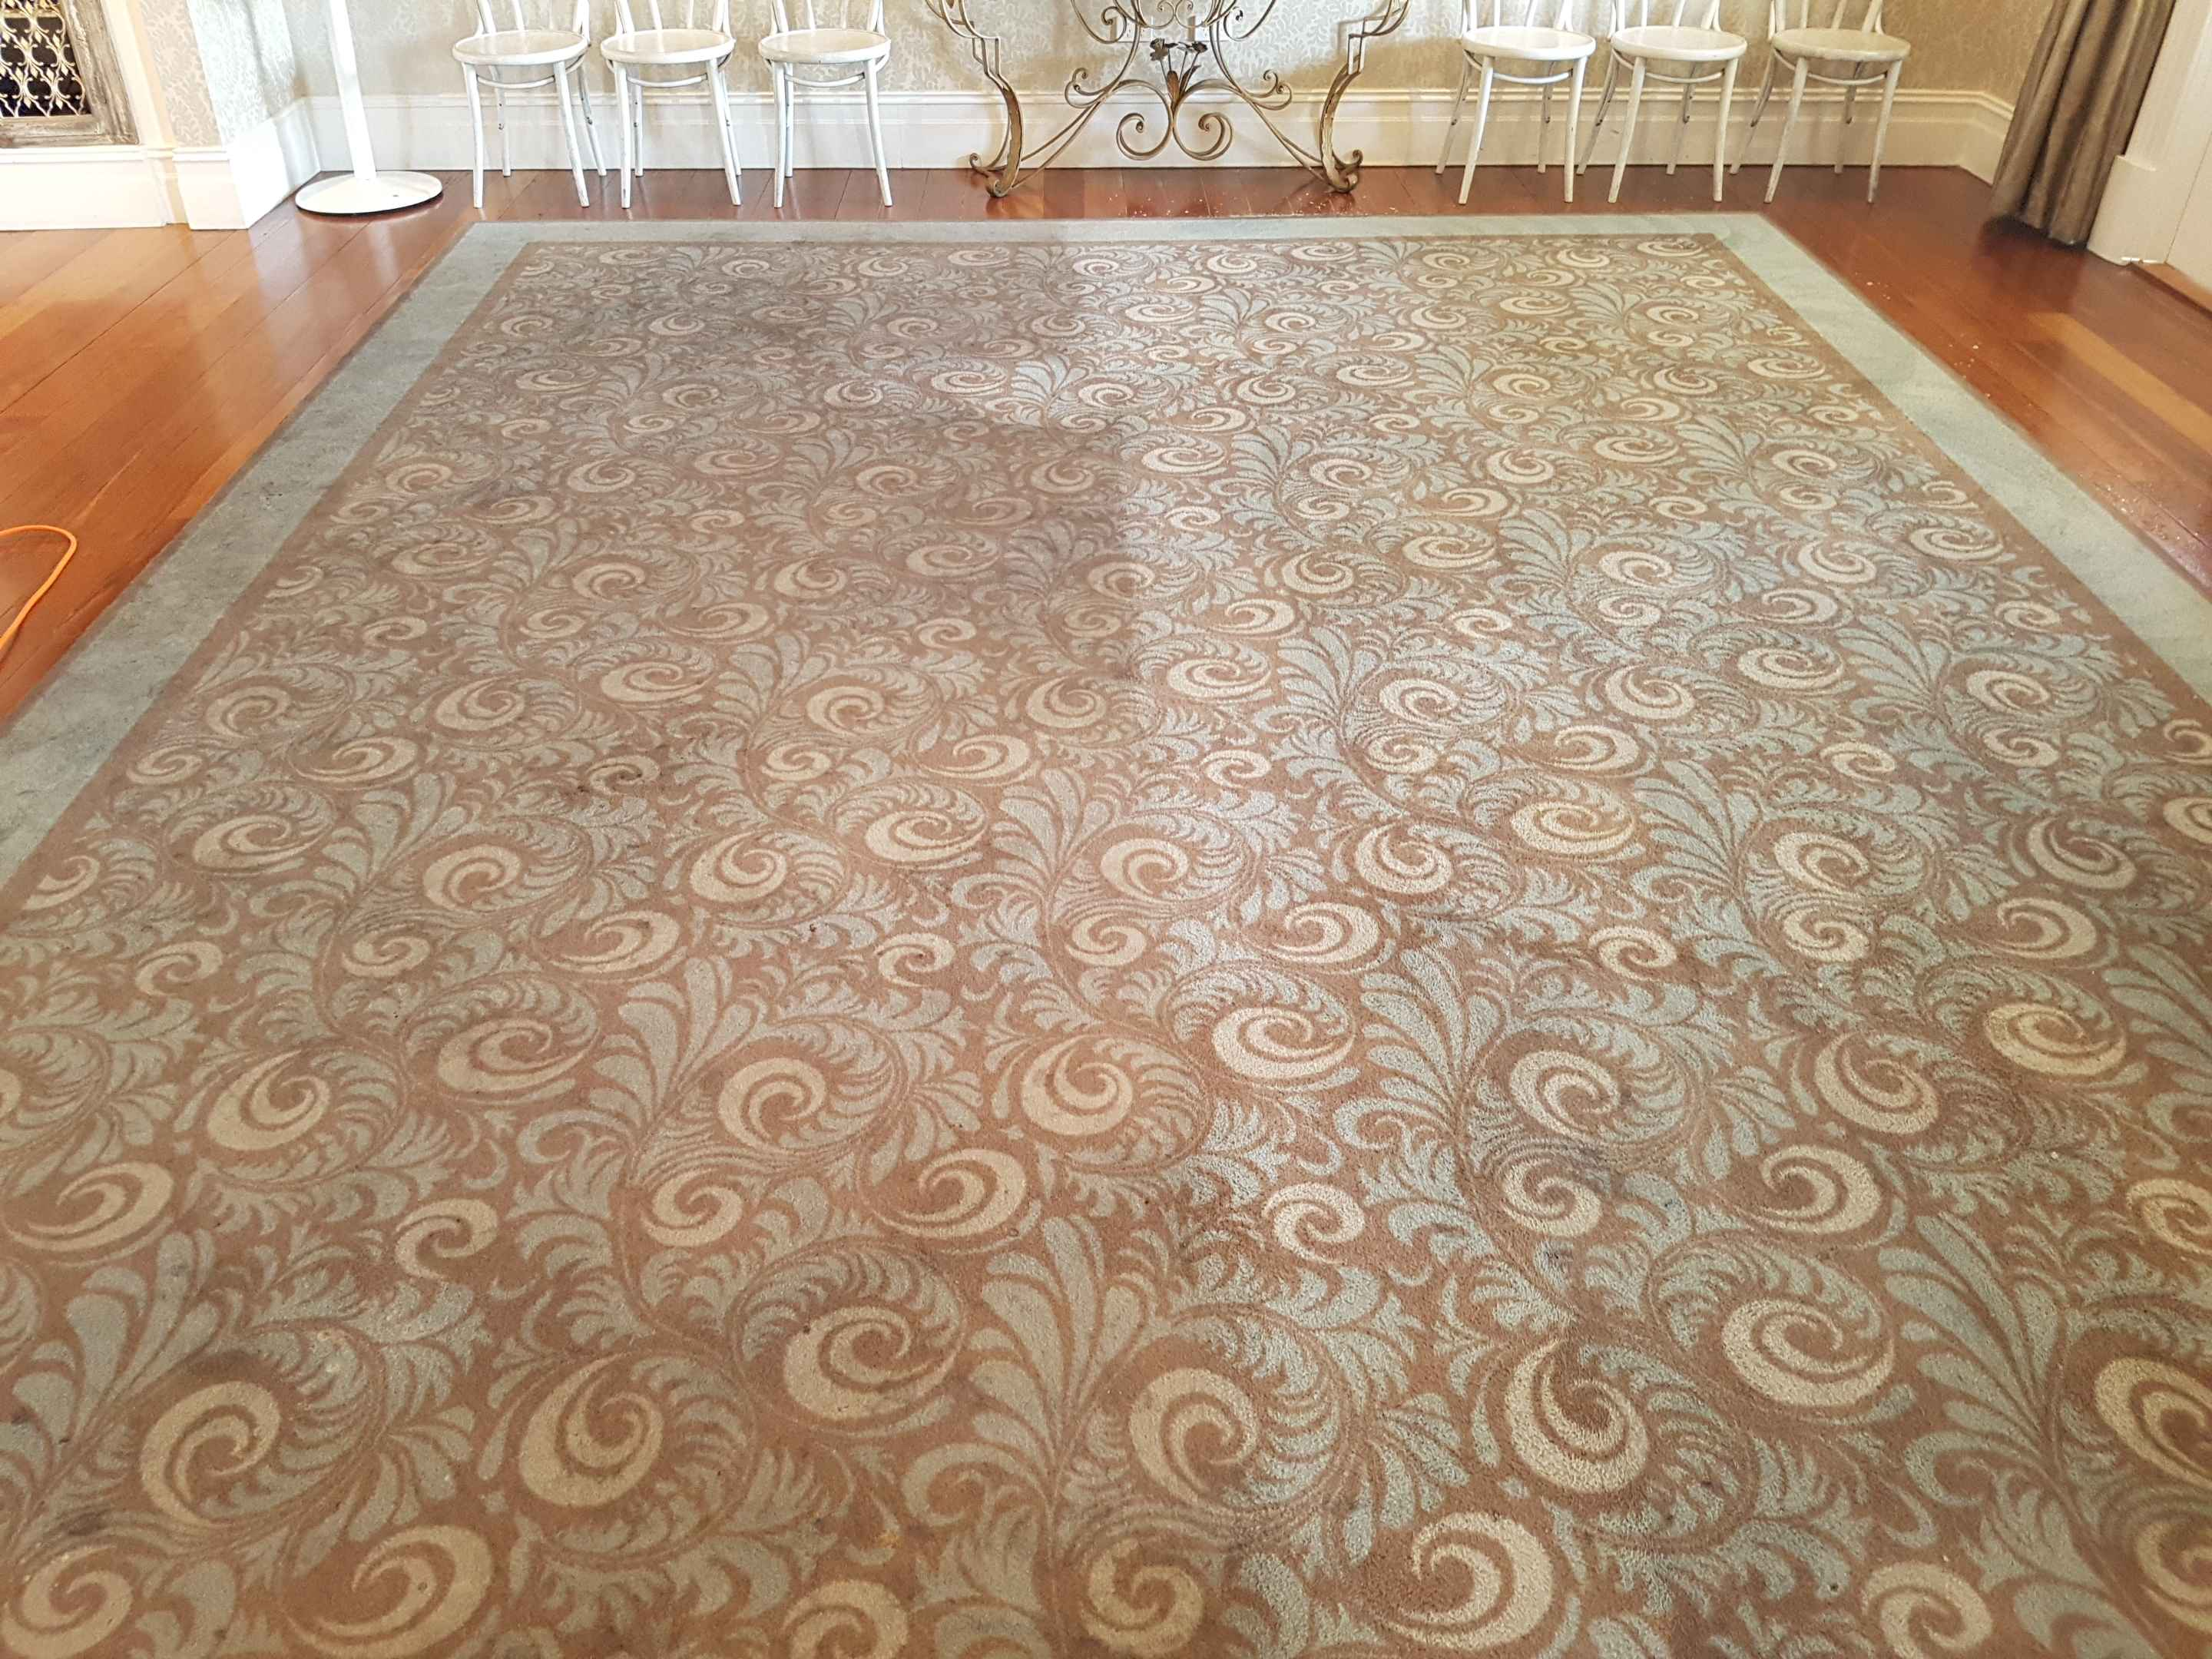 rug cleaning services in adelaide